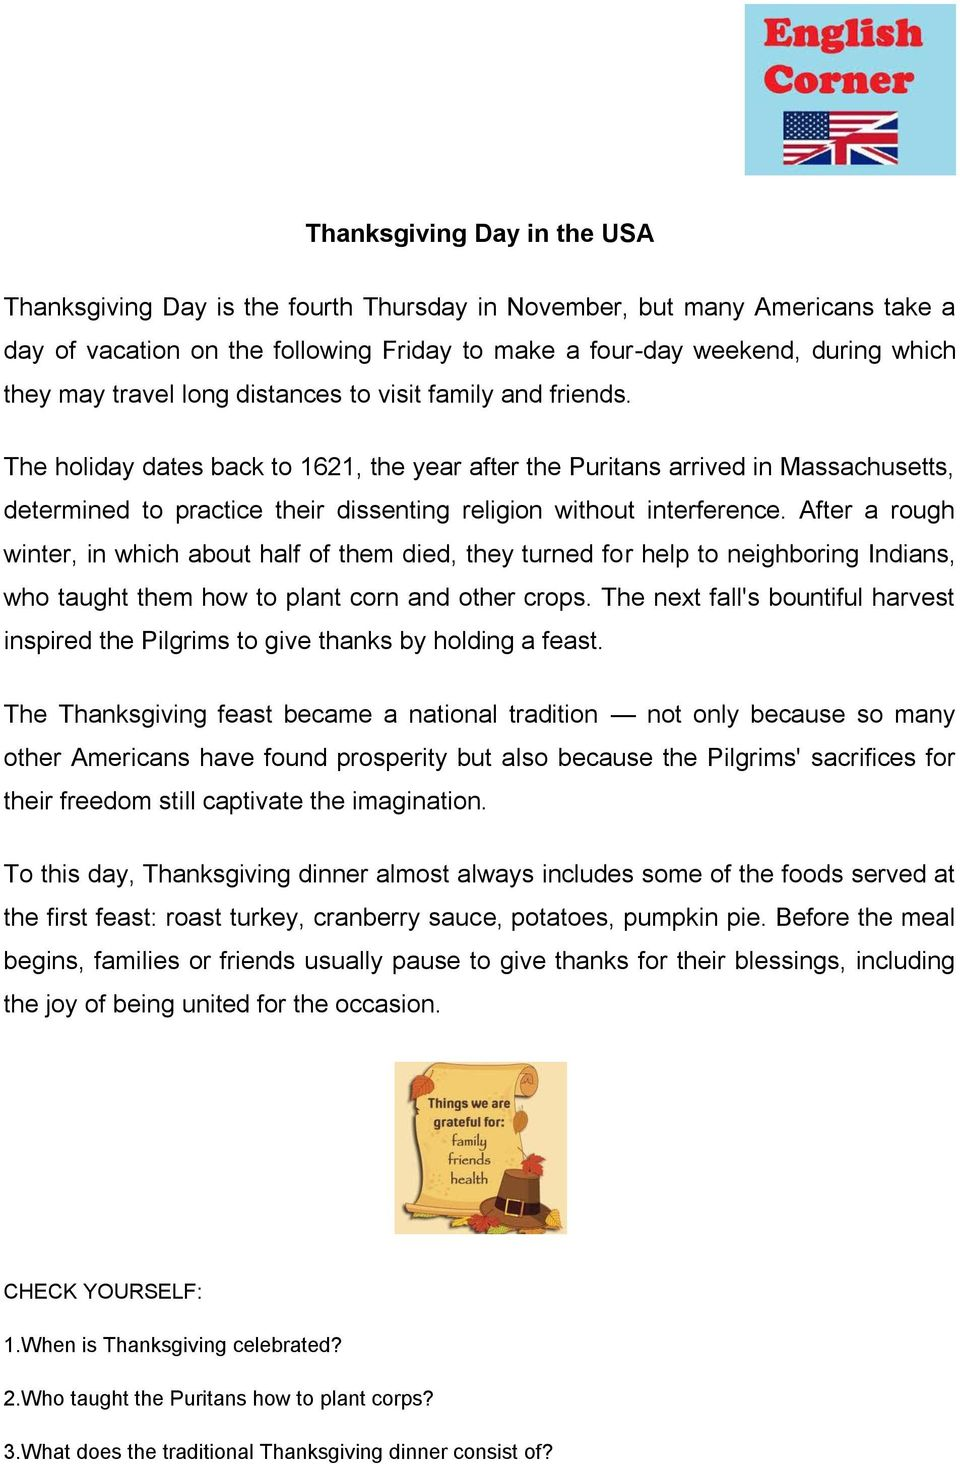 The holiday dates back to 1621, the year after the Puritans arrived in Massachusetts, determined to practice their dissenting religion without interference.